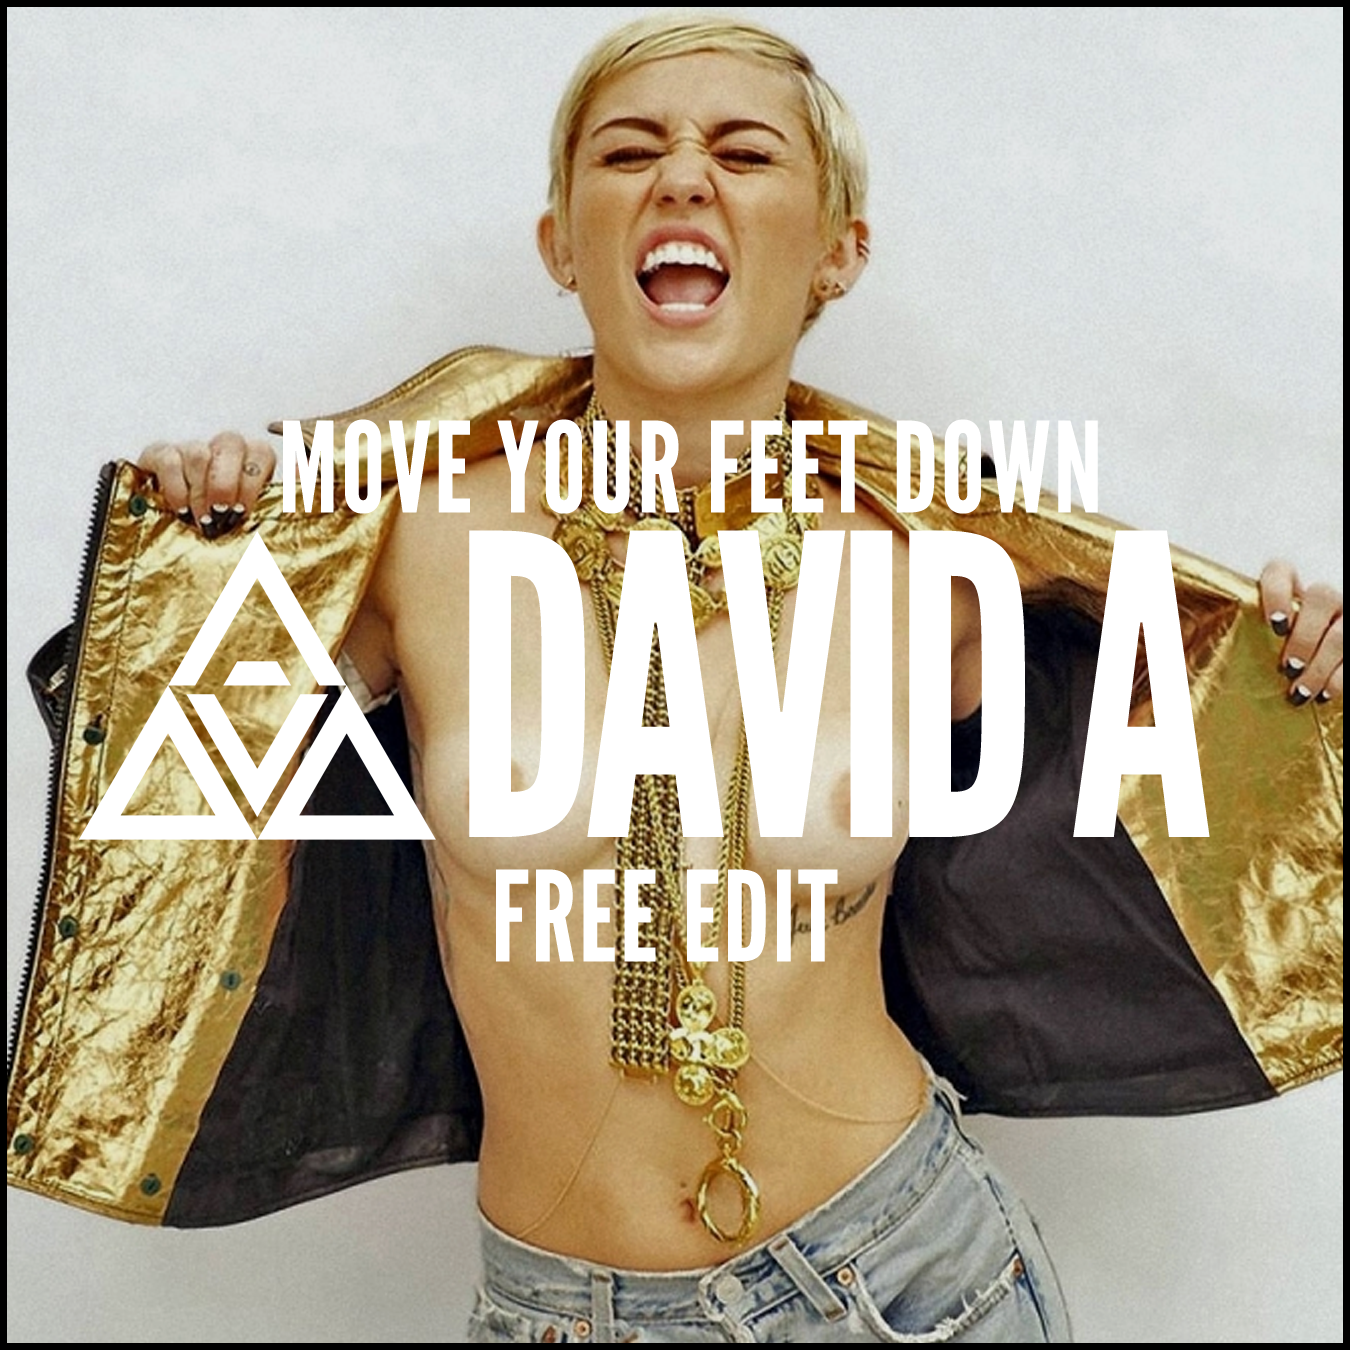 Junior Senior vs Dyro - Free Edit - Move Your Feet Down - David A